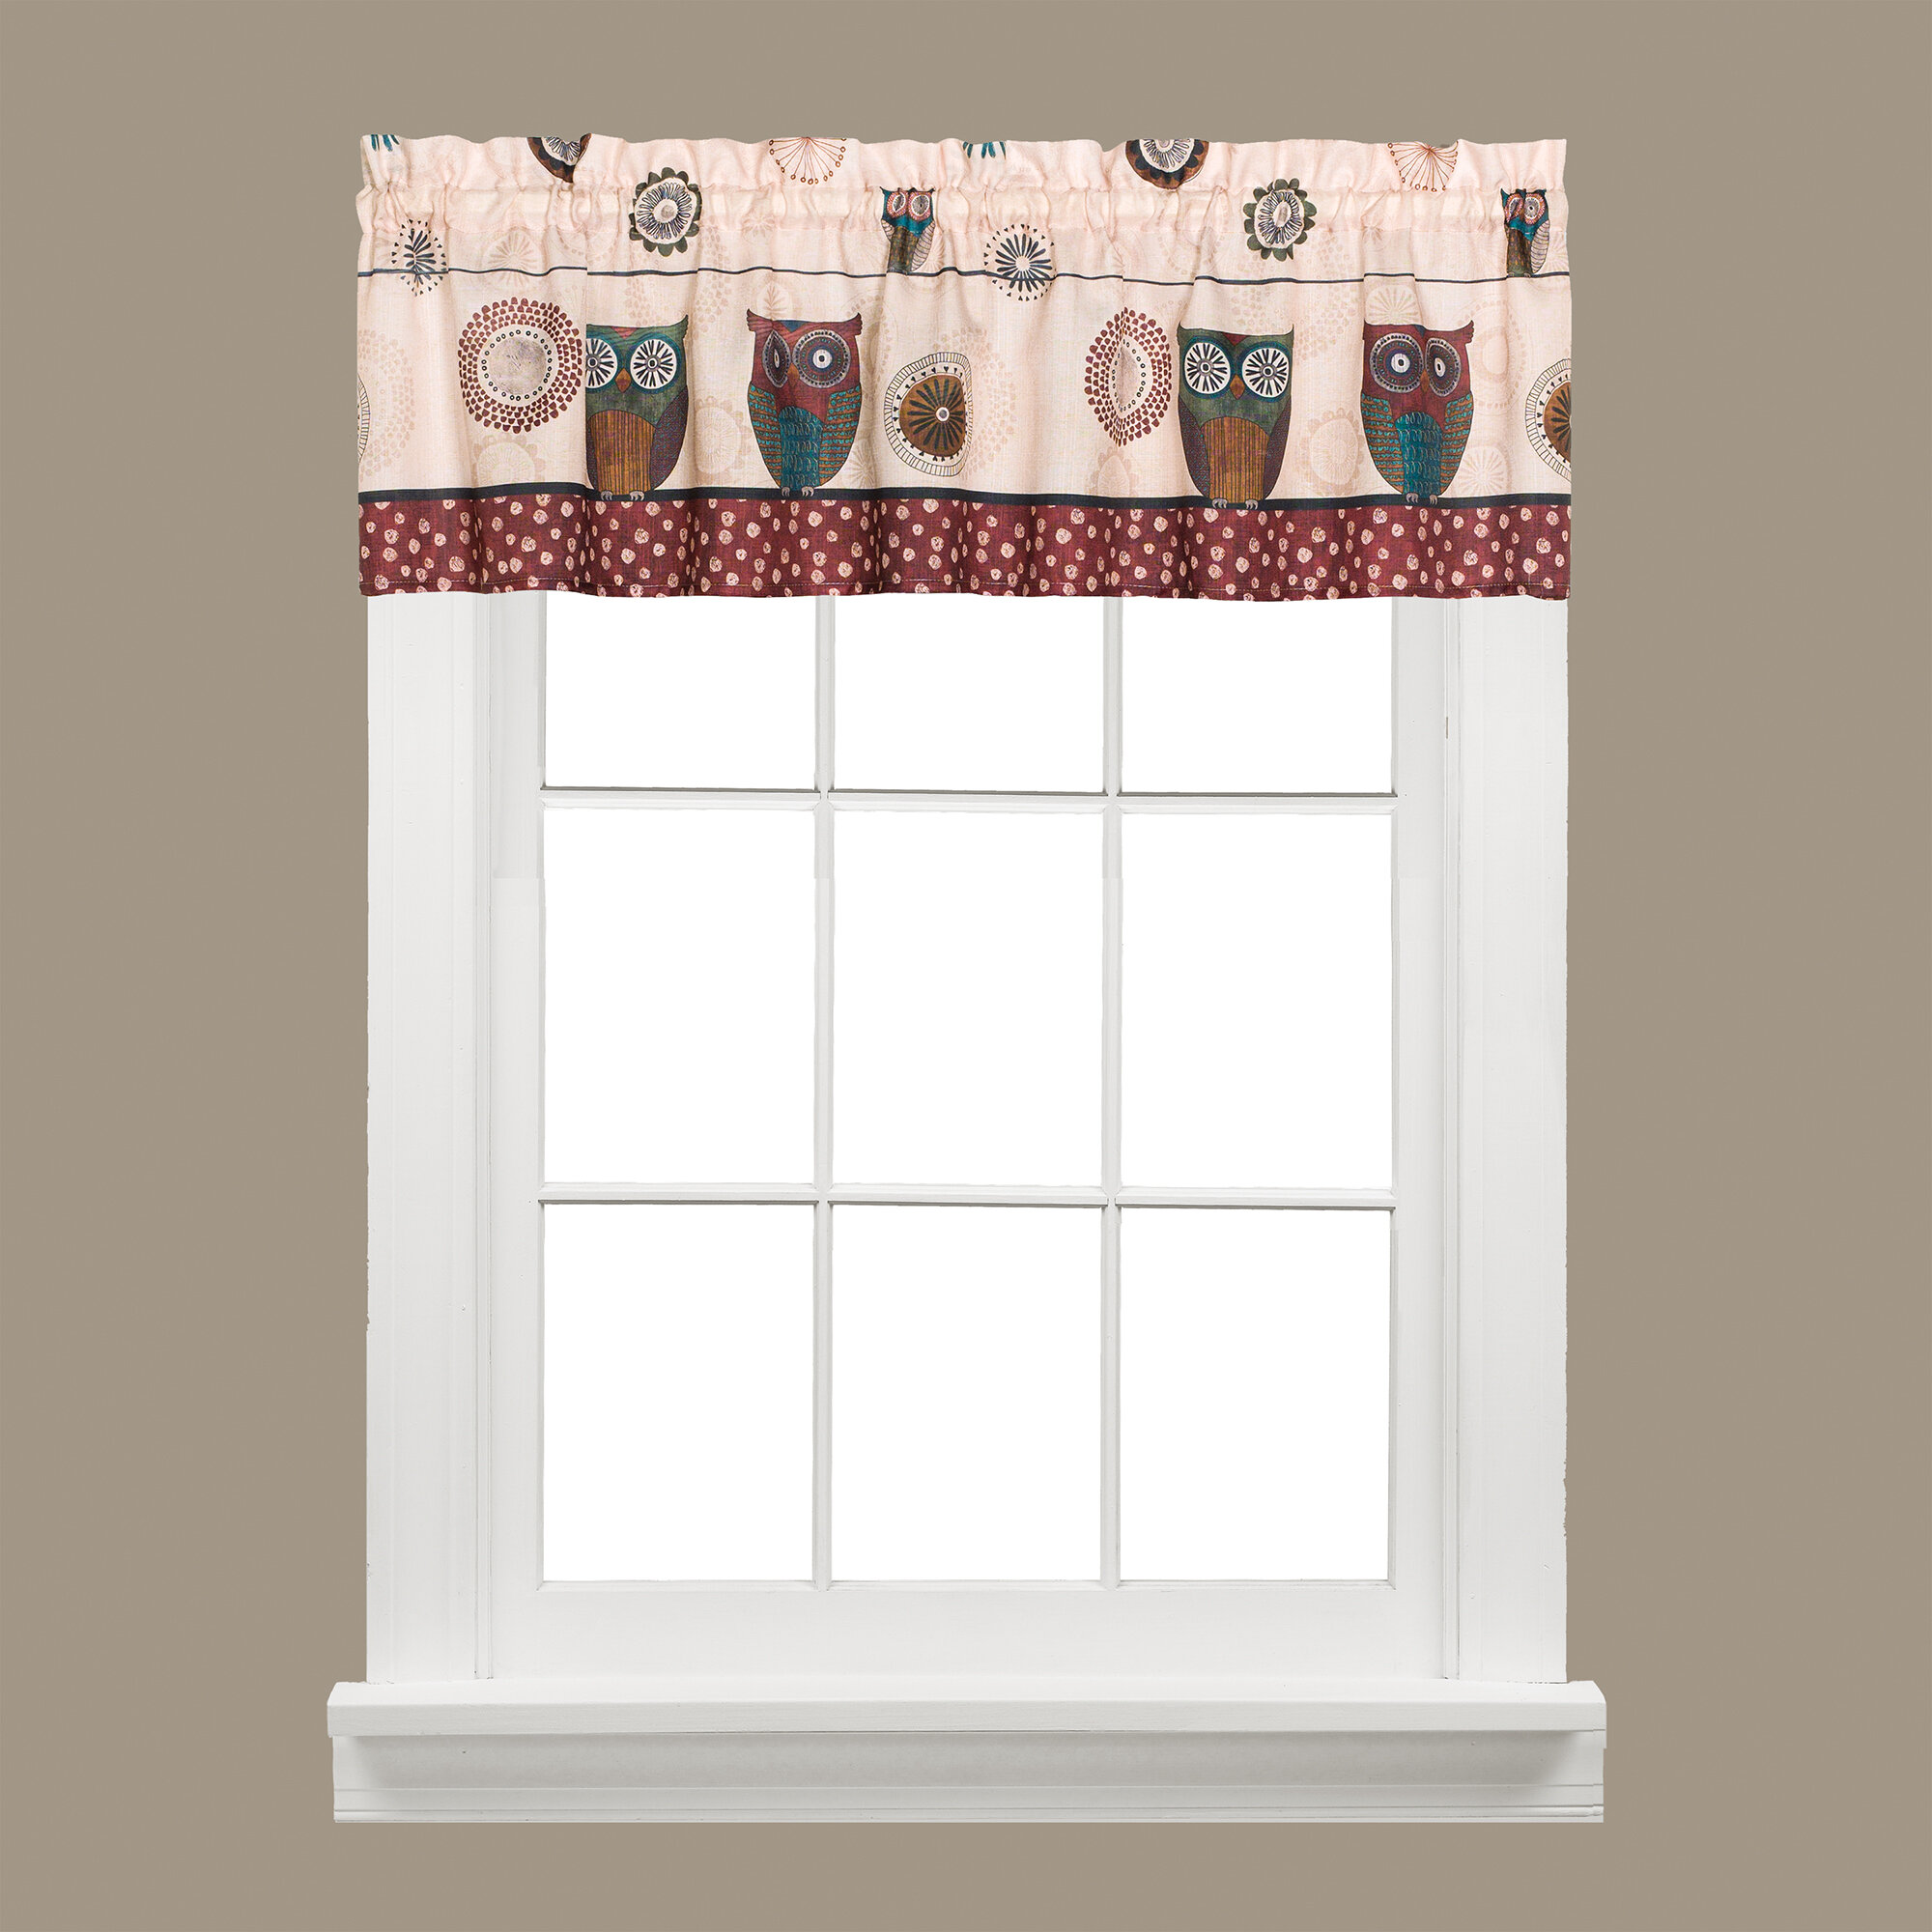 custom with ideas valance striped window decors treatments wooden valances design